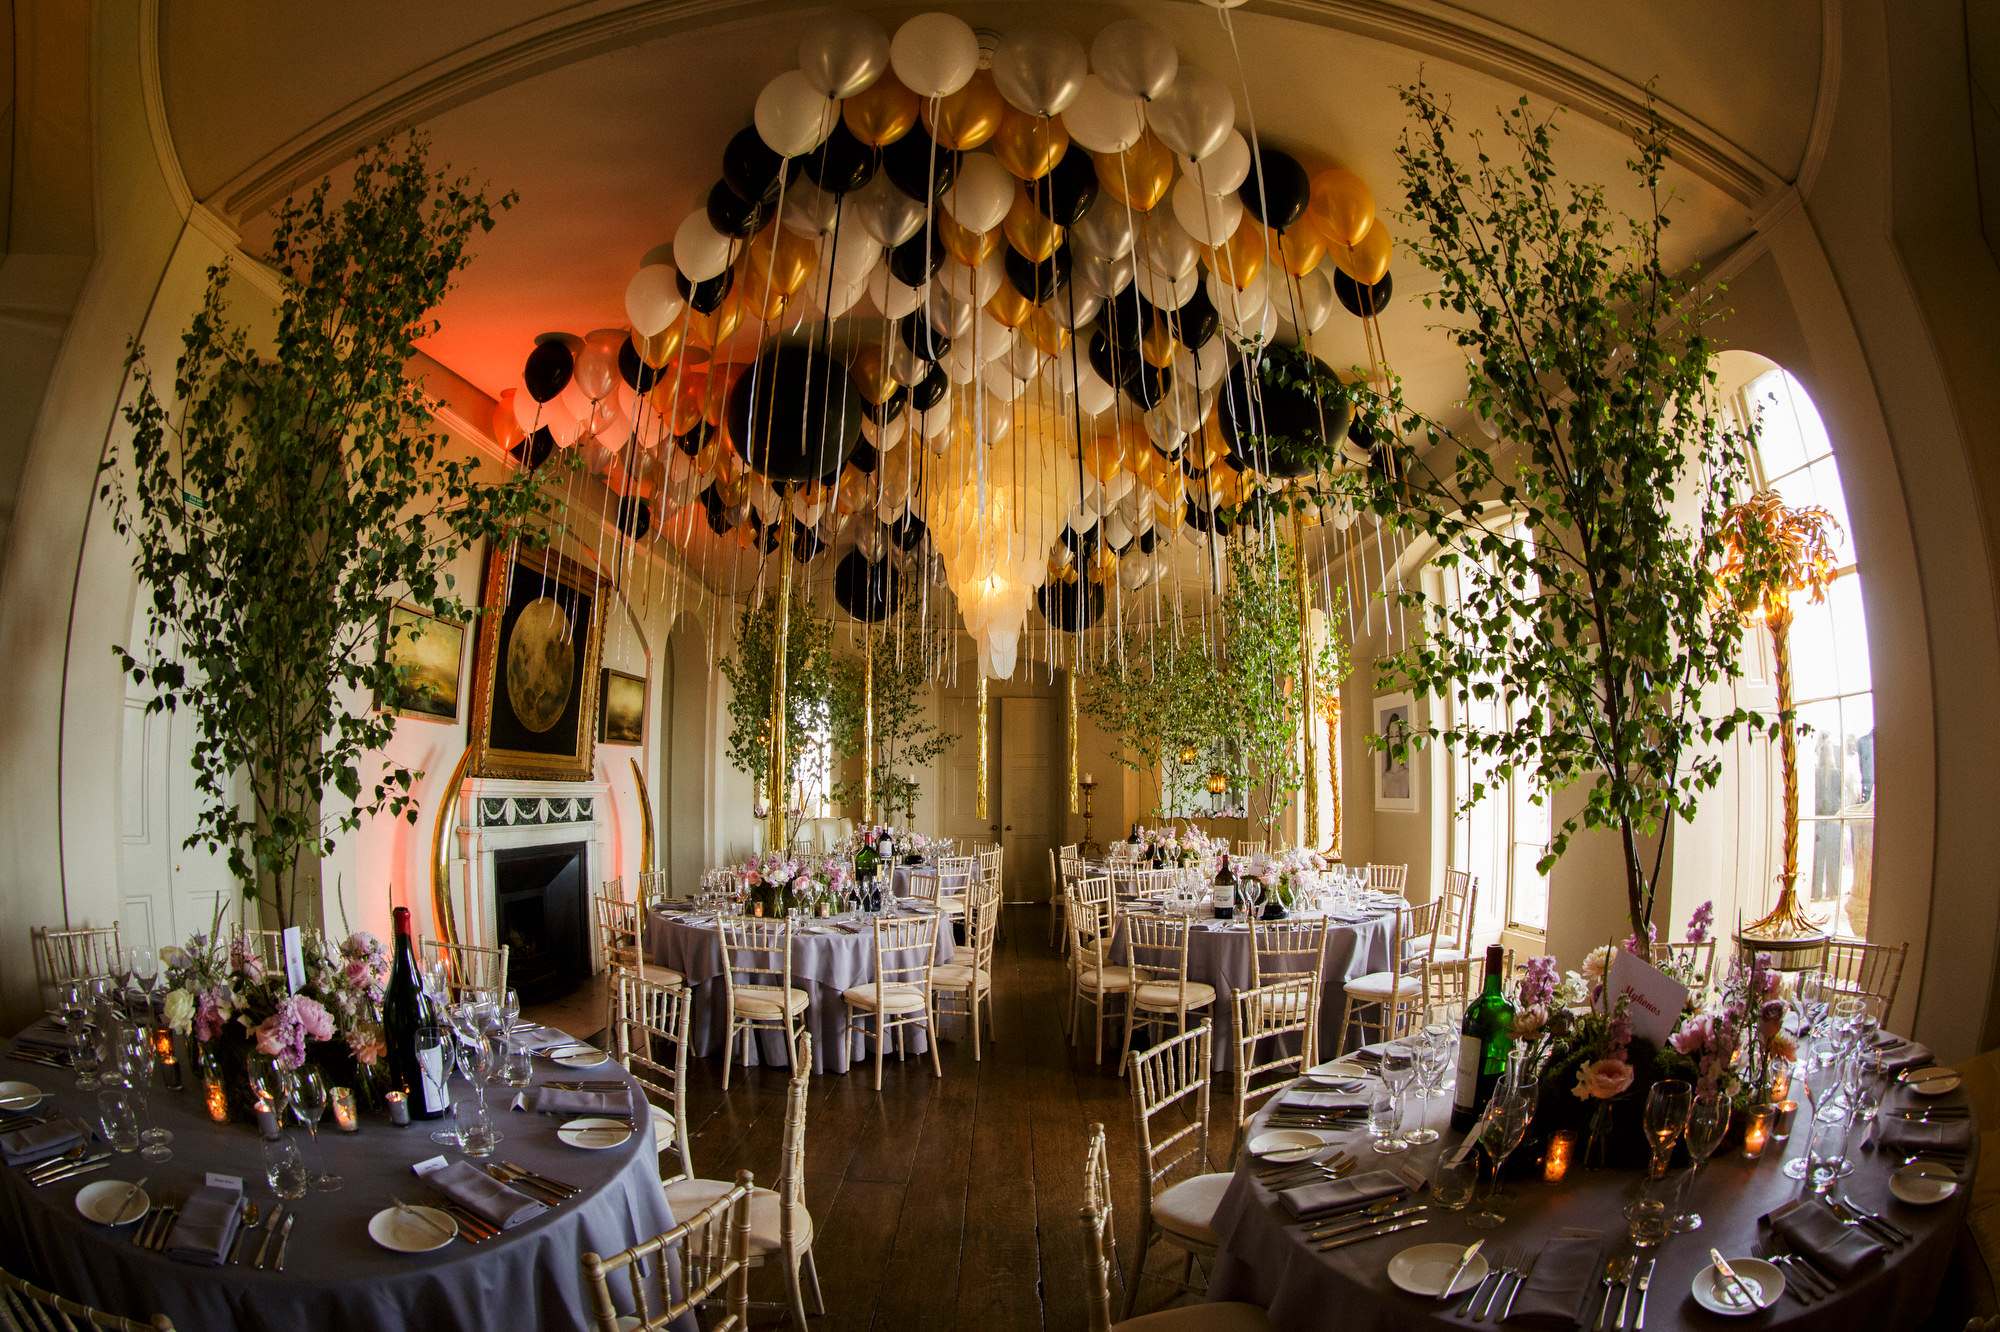 Aynho reception hall with balloons - photo by Jeff Ascough